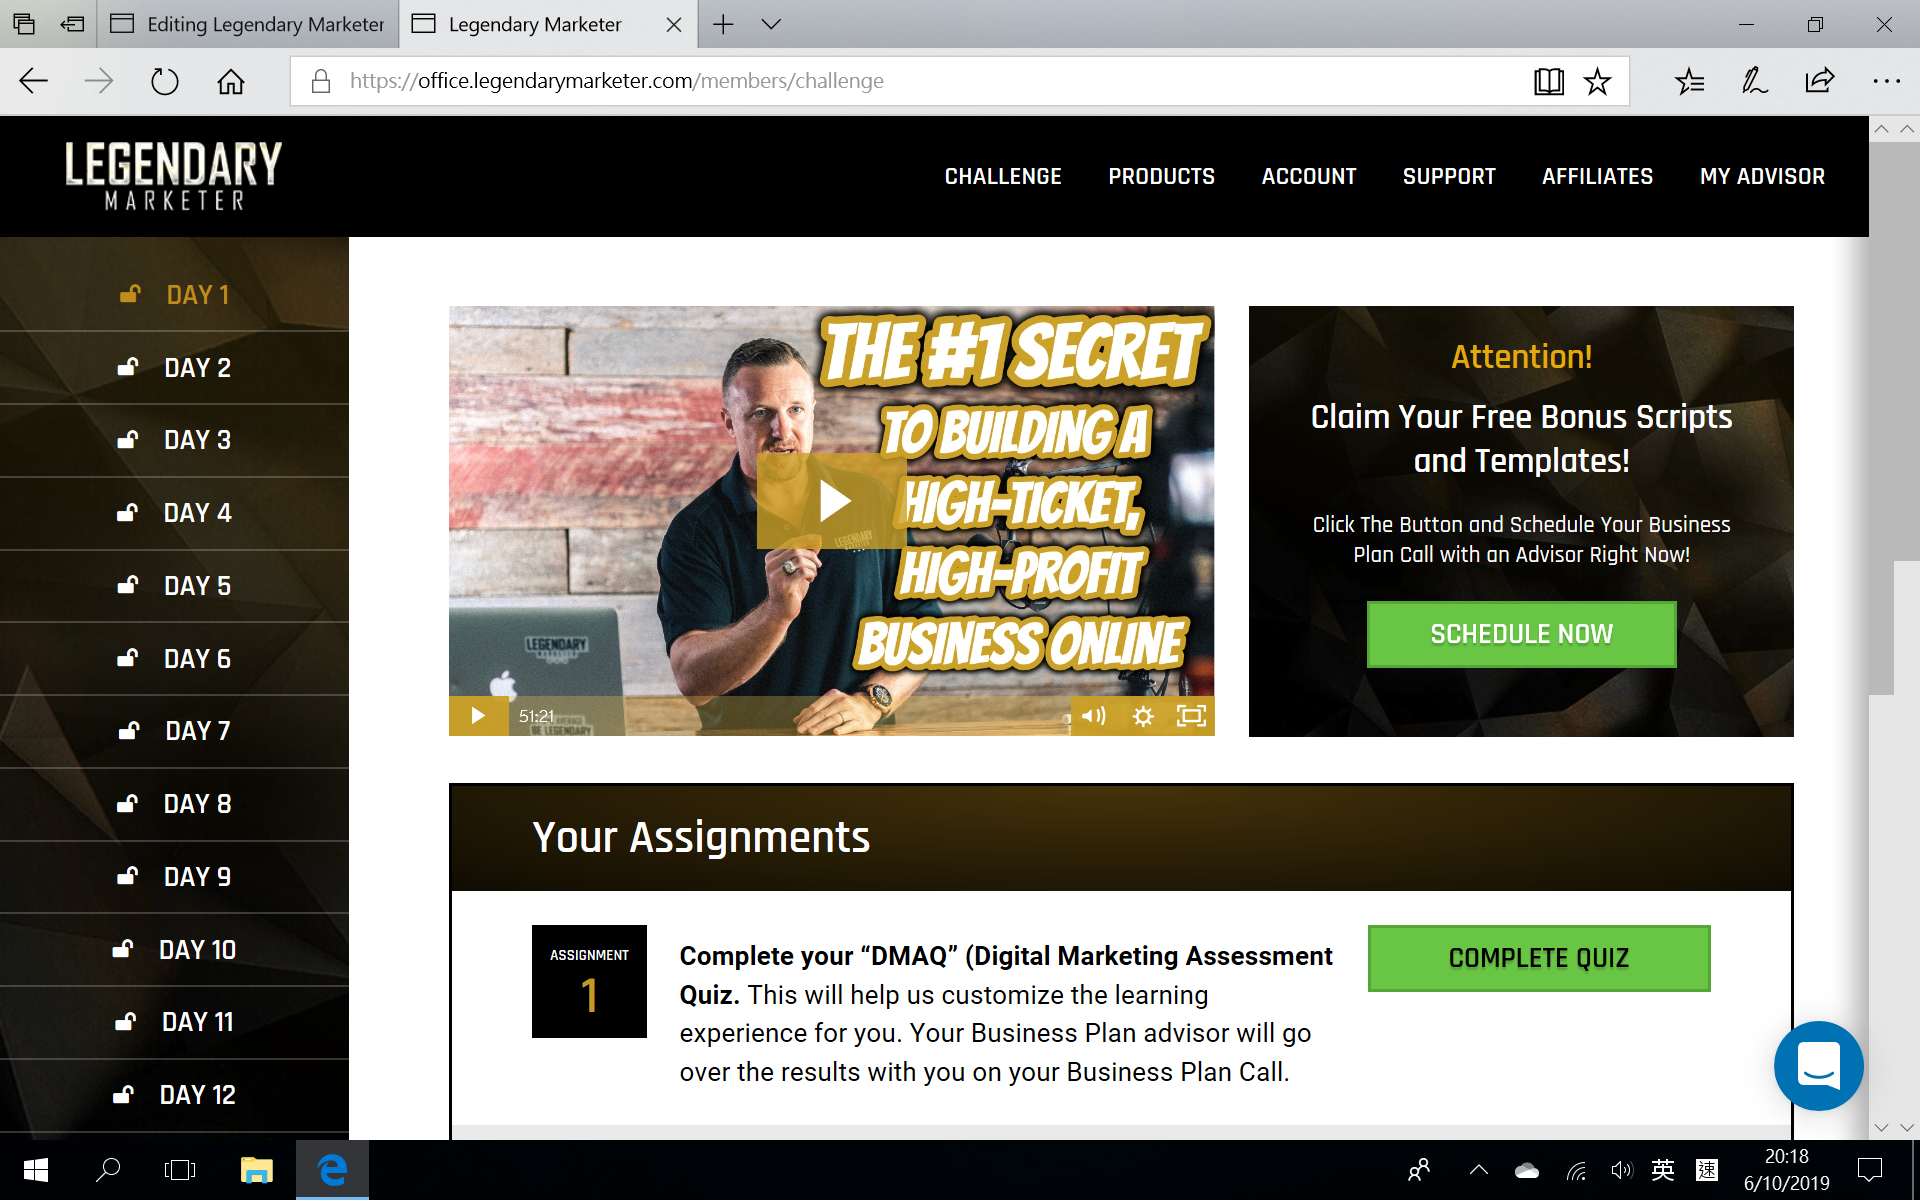 Warranty Customer Service  Legendary Marketer Internet Marketing Program